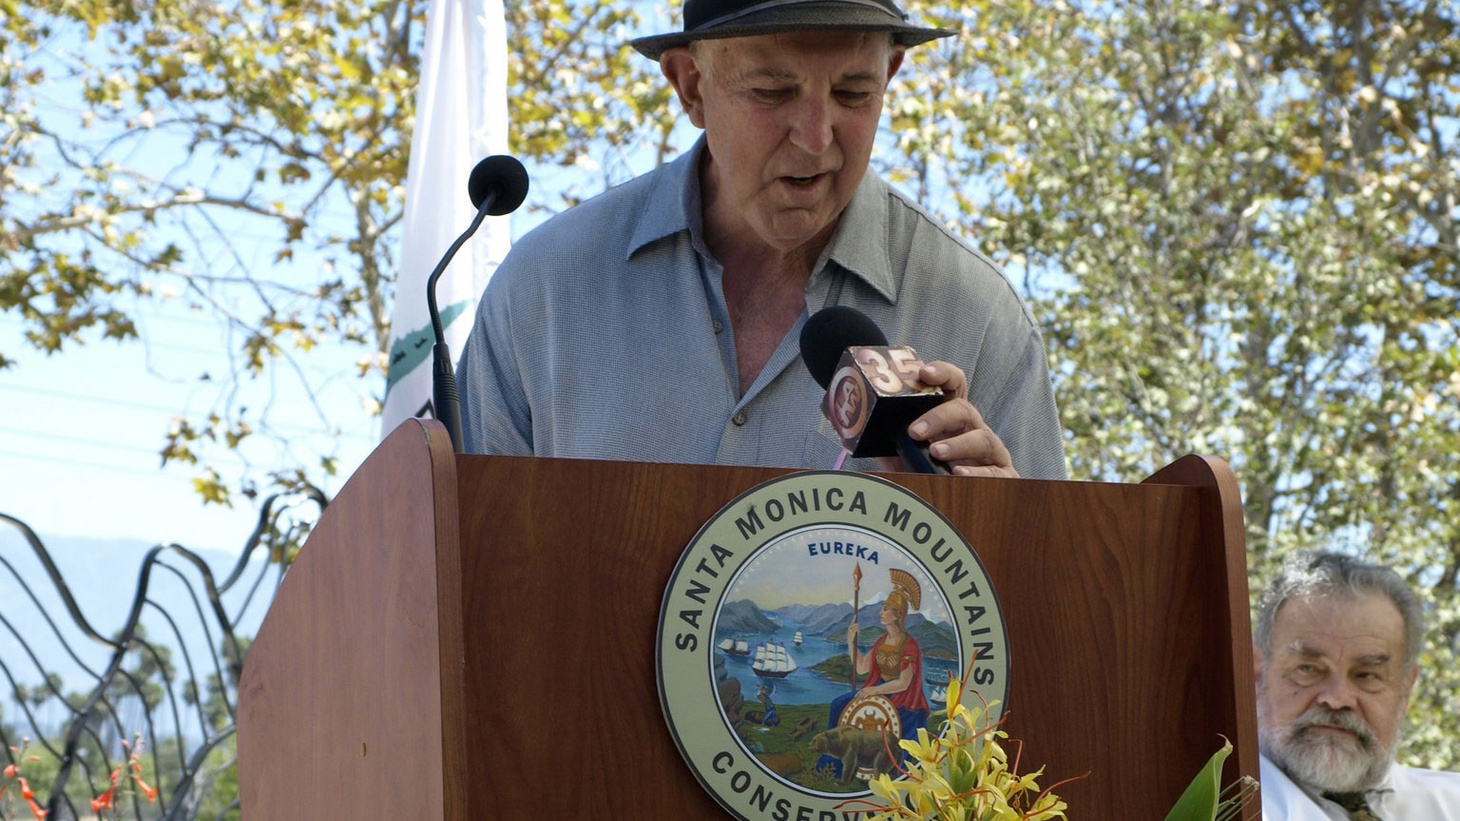 The Los Angeles River is losing one of its fiercest advocates. Lewis MacAdams founded Friends of the Los Angeles River three decades ago, and will soon step down as president.